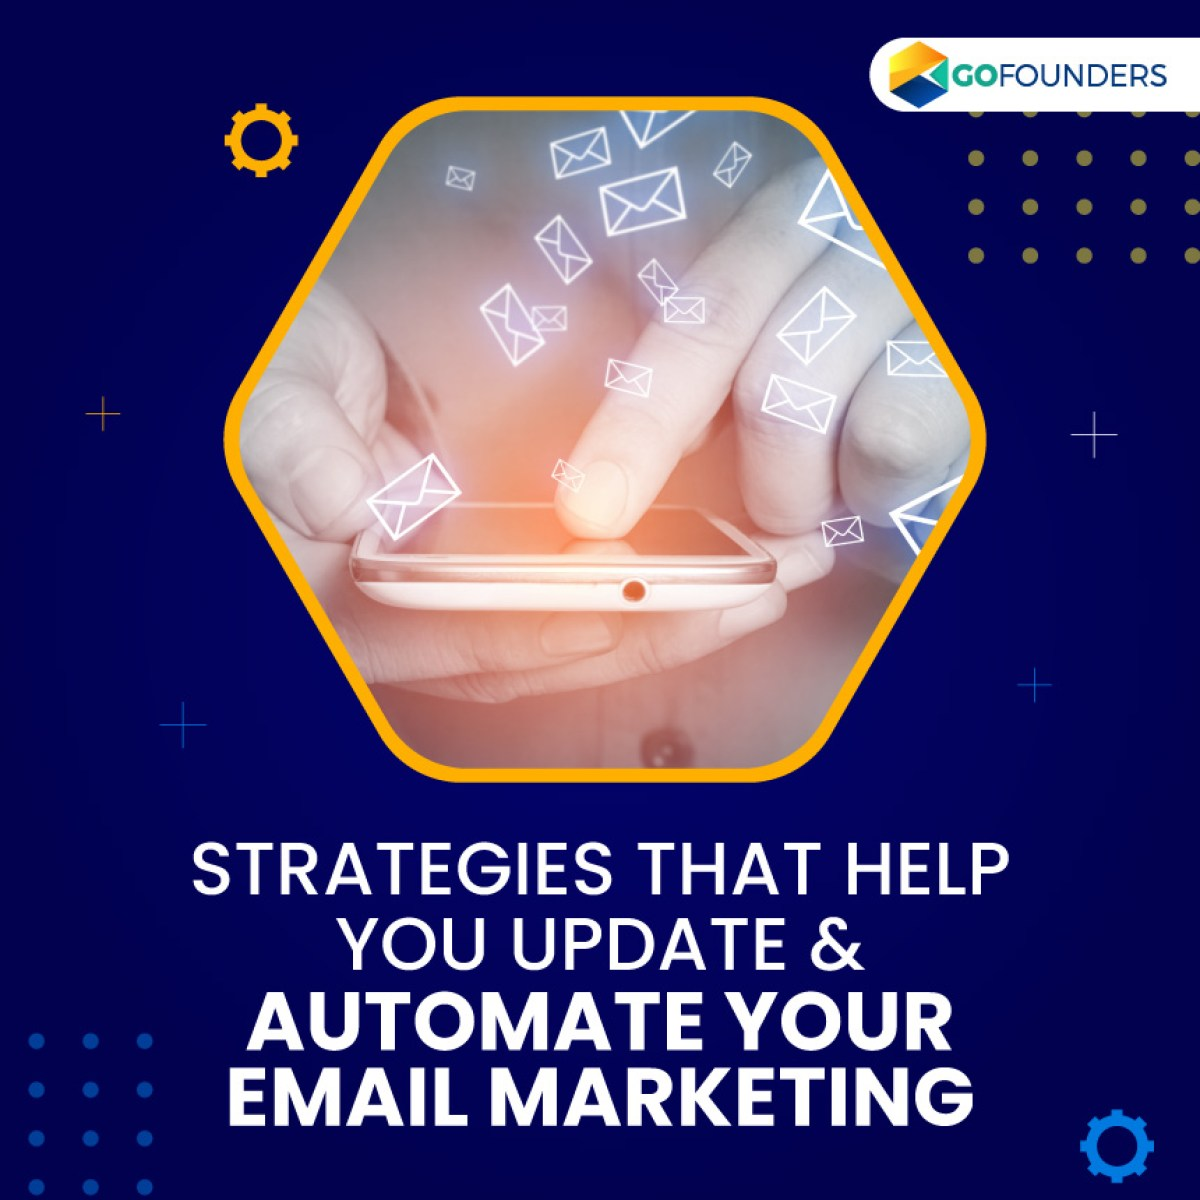 Make Most Of Your Email Marketing Efforts With These Simple Strategies